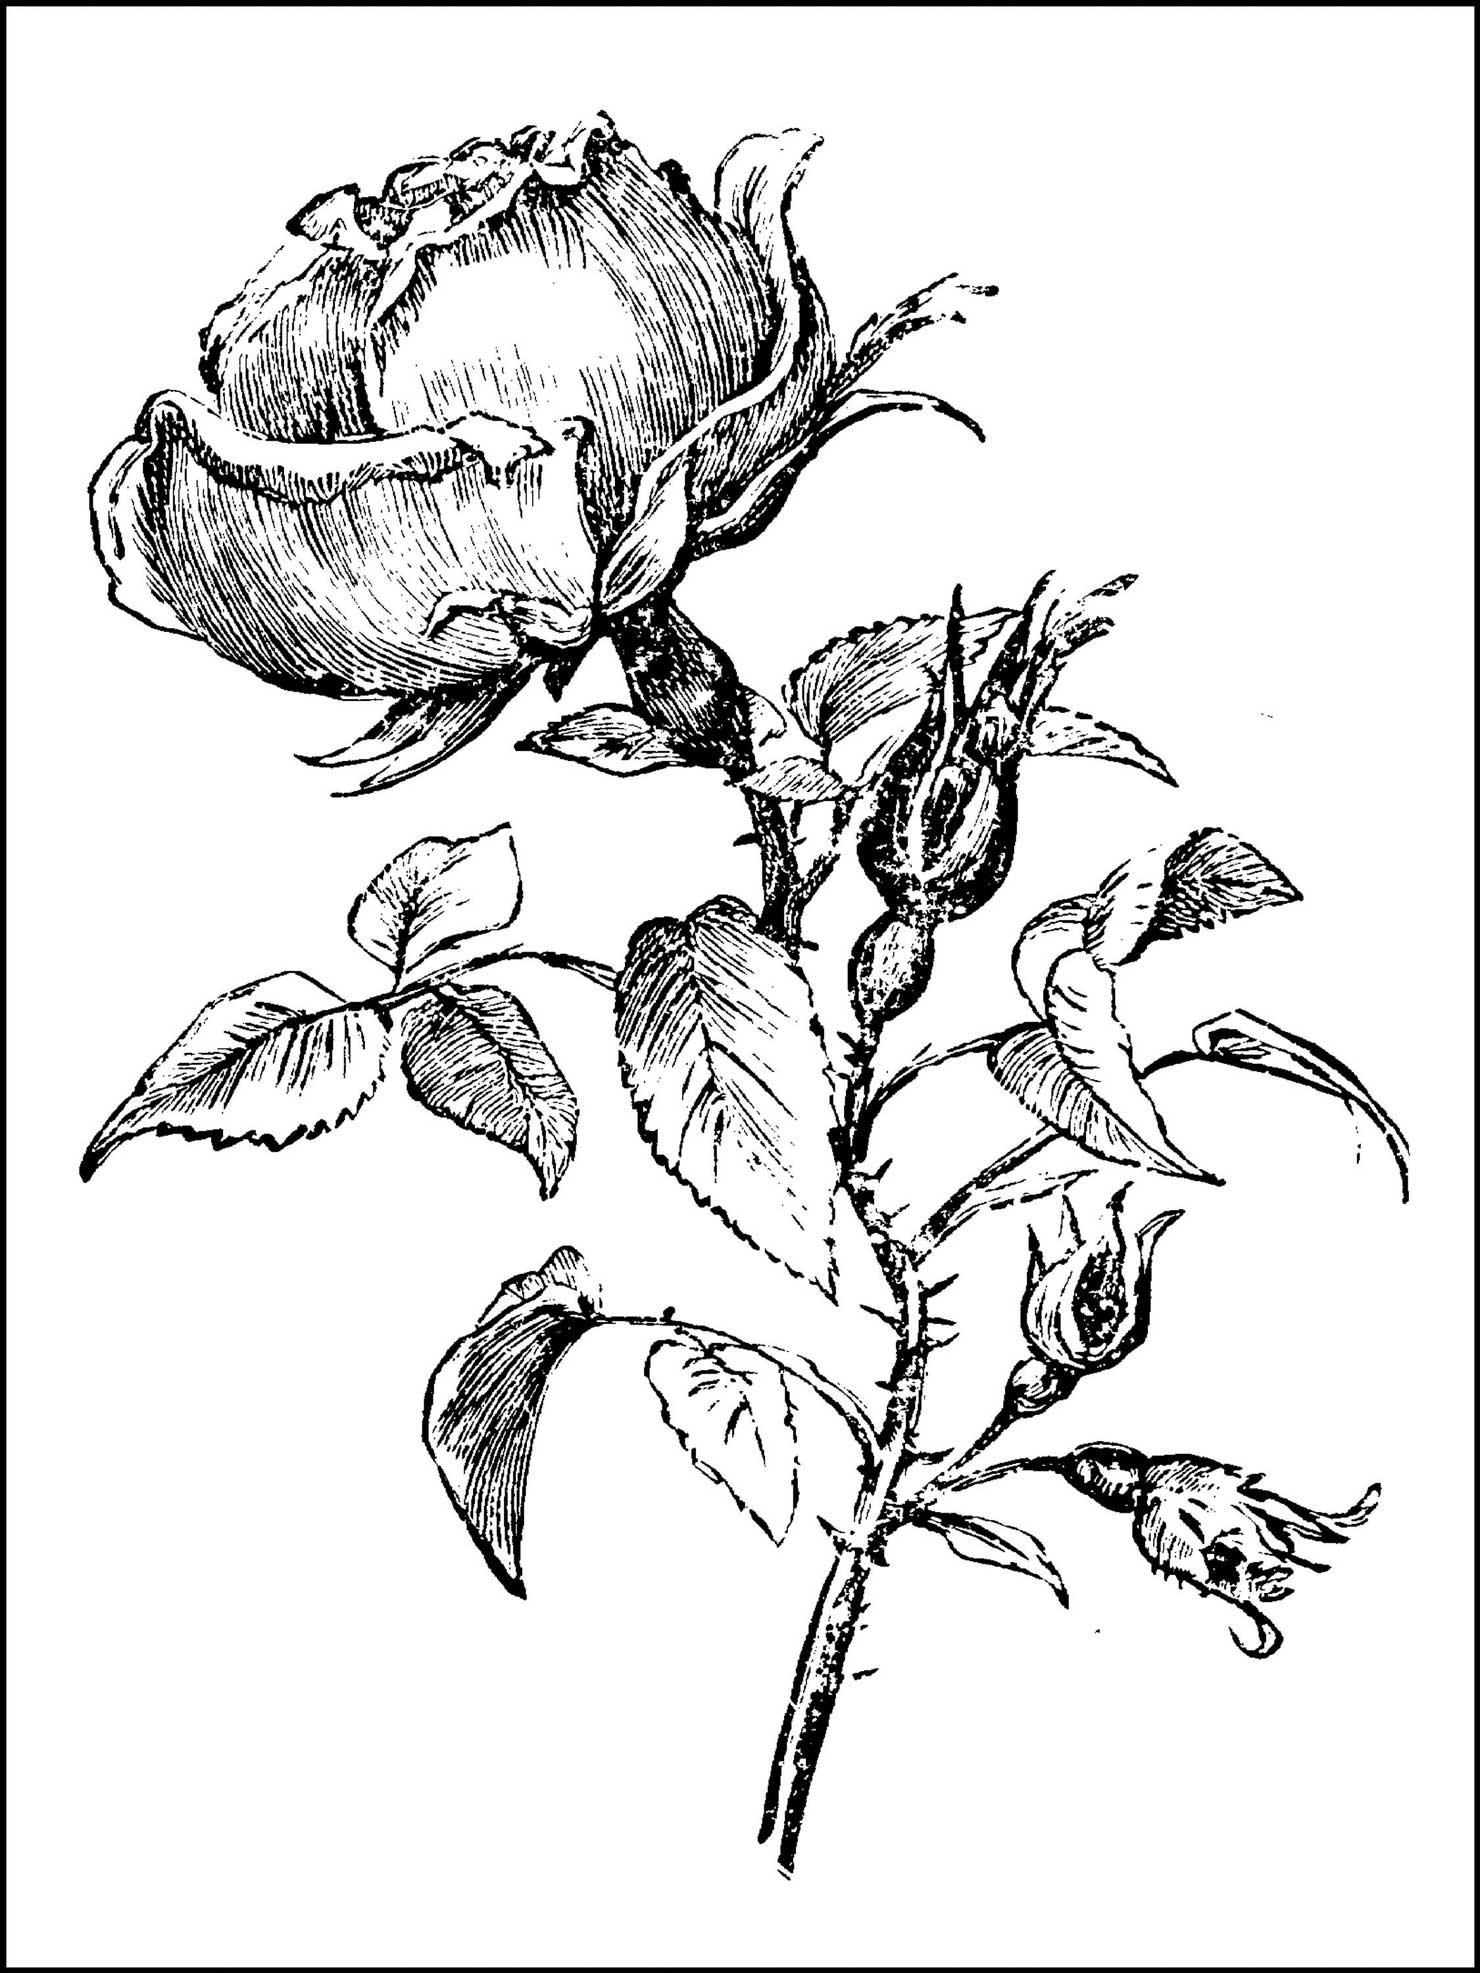 rose colouring pages rose coloring pages with subtle shapes and forms can be rose colouring pages